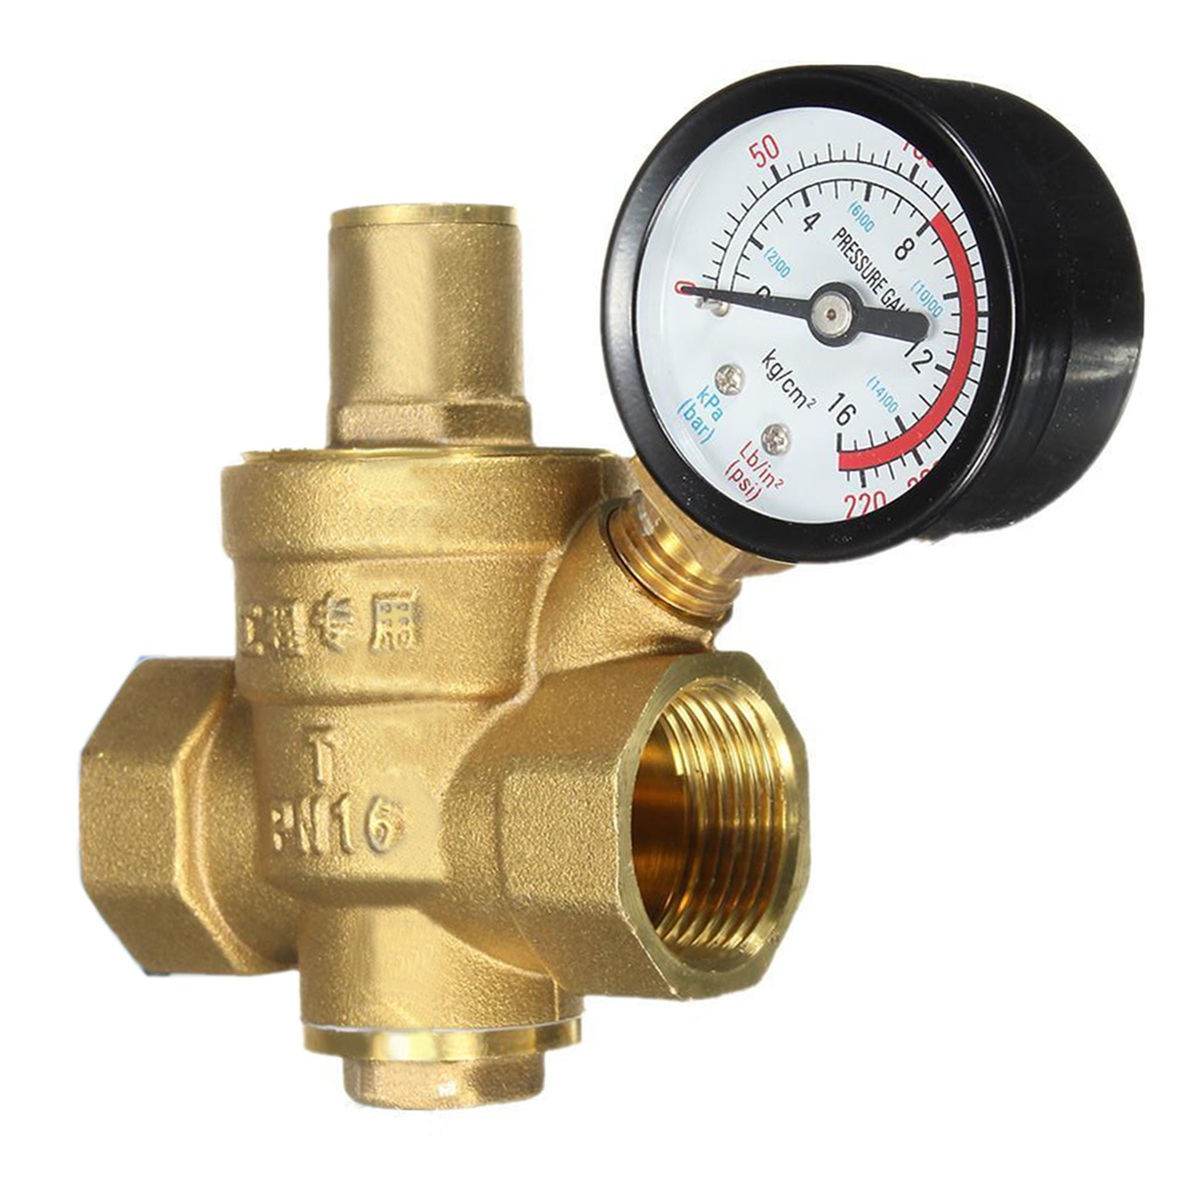 reliable brass water pressure regulator with gauge flow dn20 3 4 connector adjustable mayitr. Black Bedroom Furniture Sets. Home Design Ideas